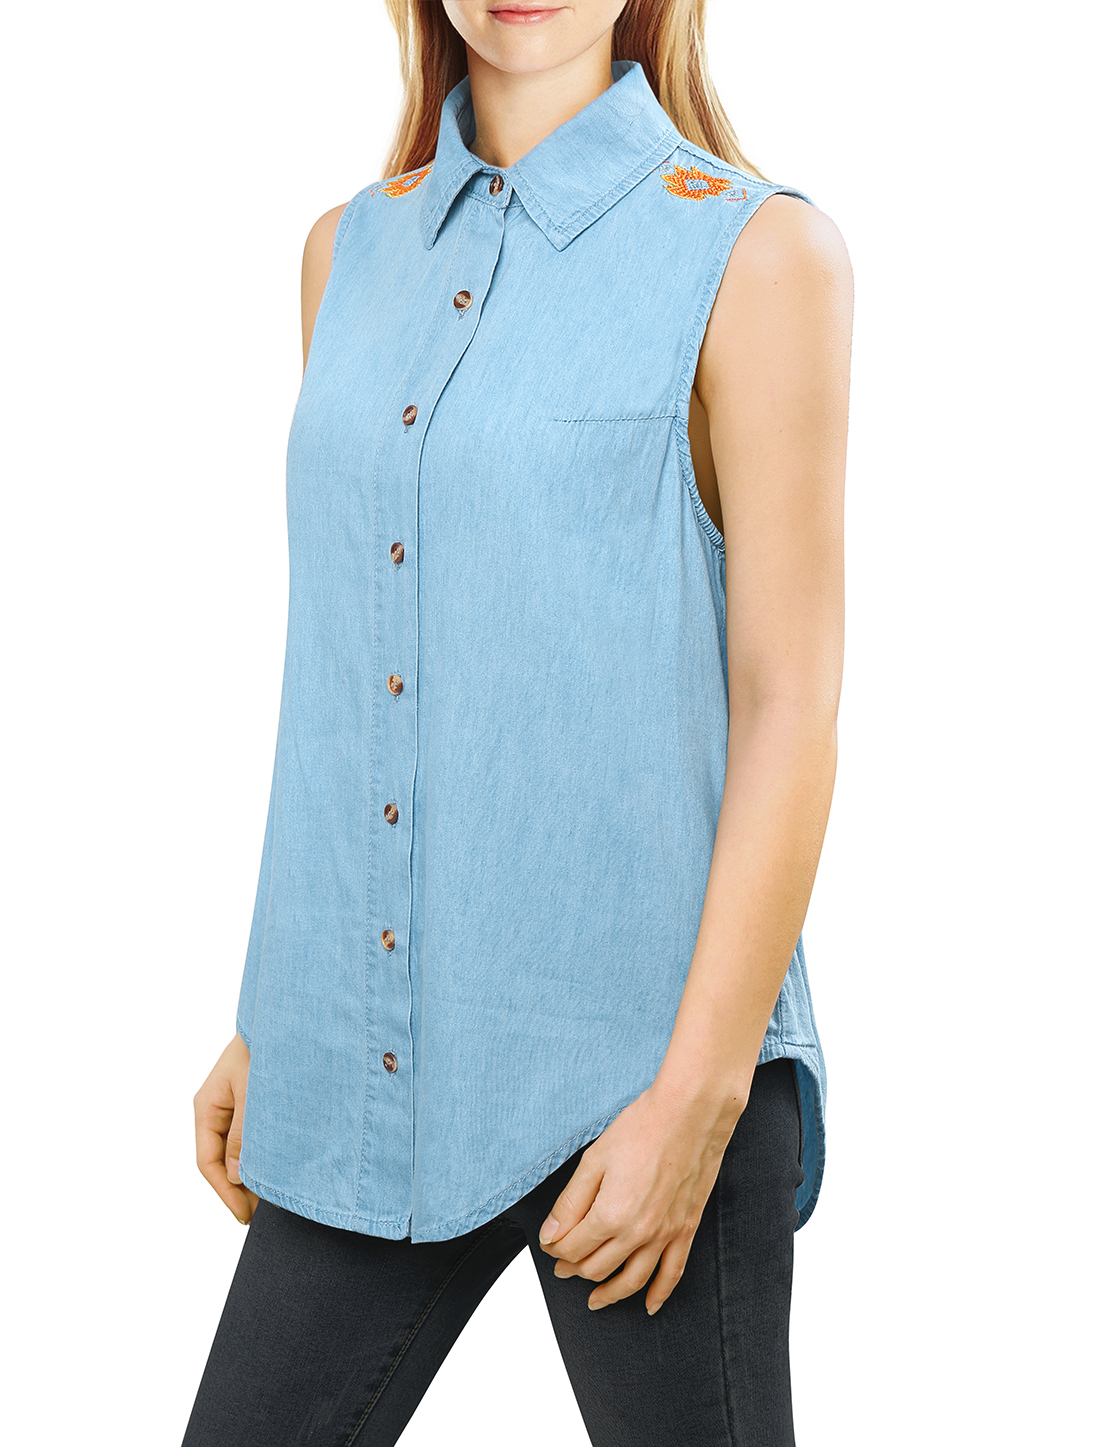 Women Embroidered Sleeveless Denim Shirt w Cut Out Back Blue S